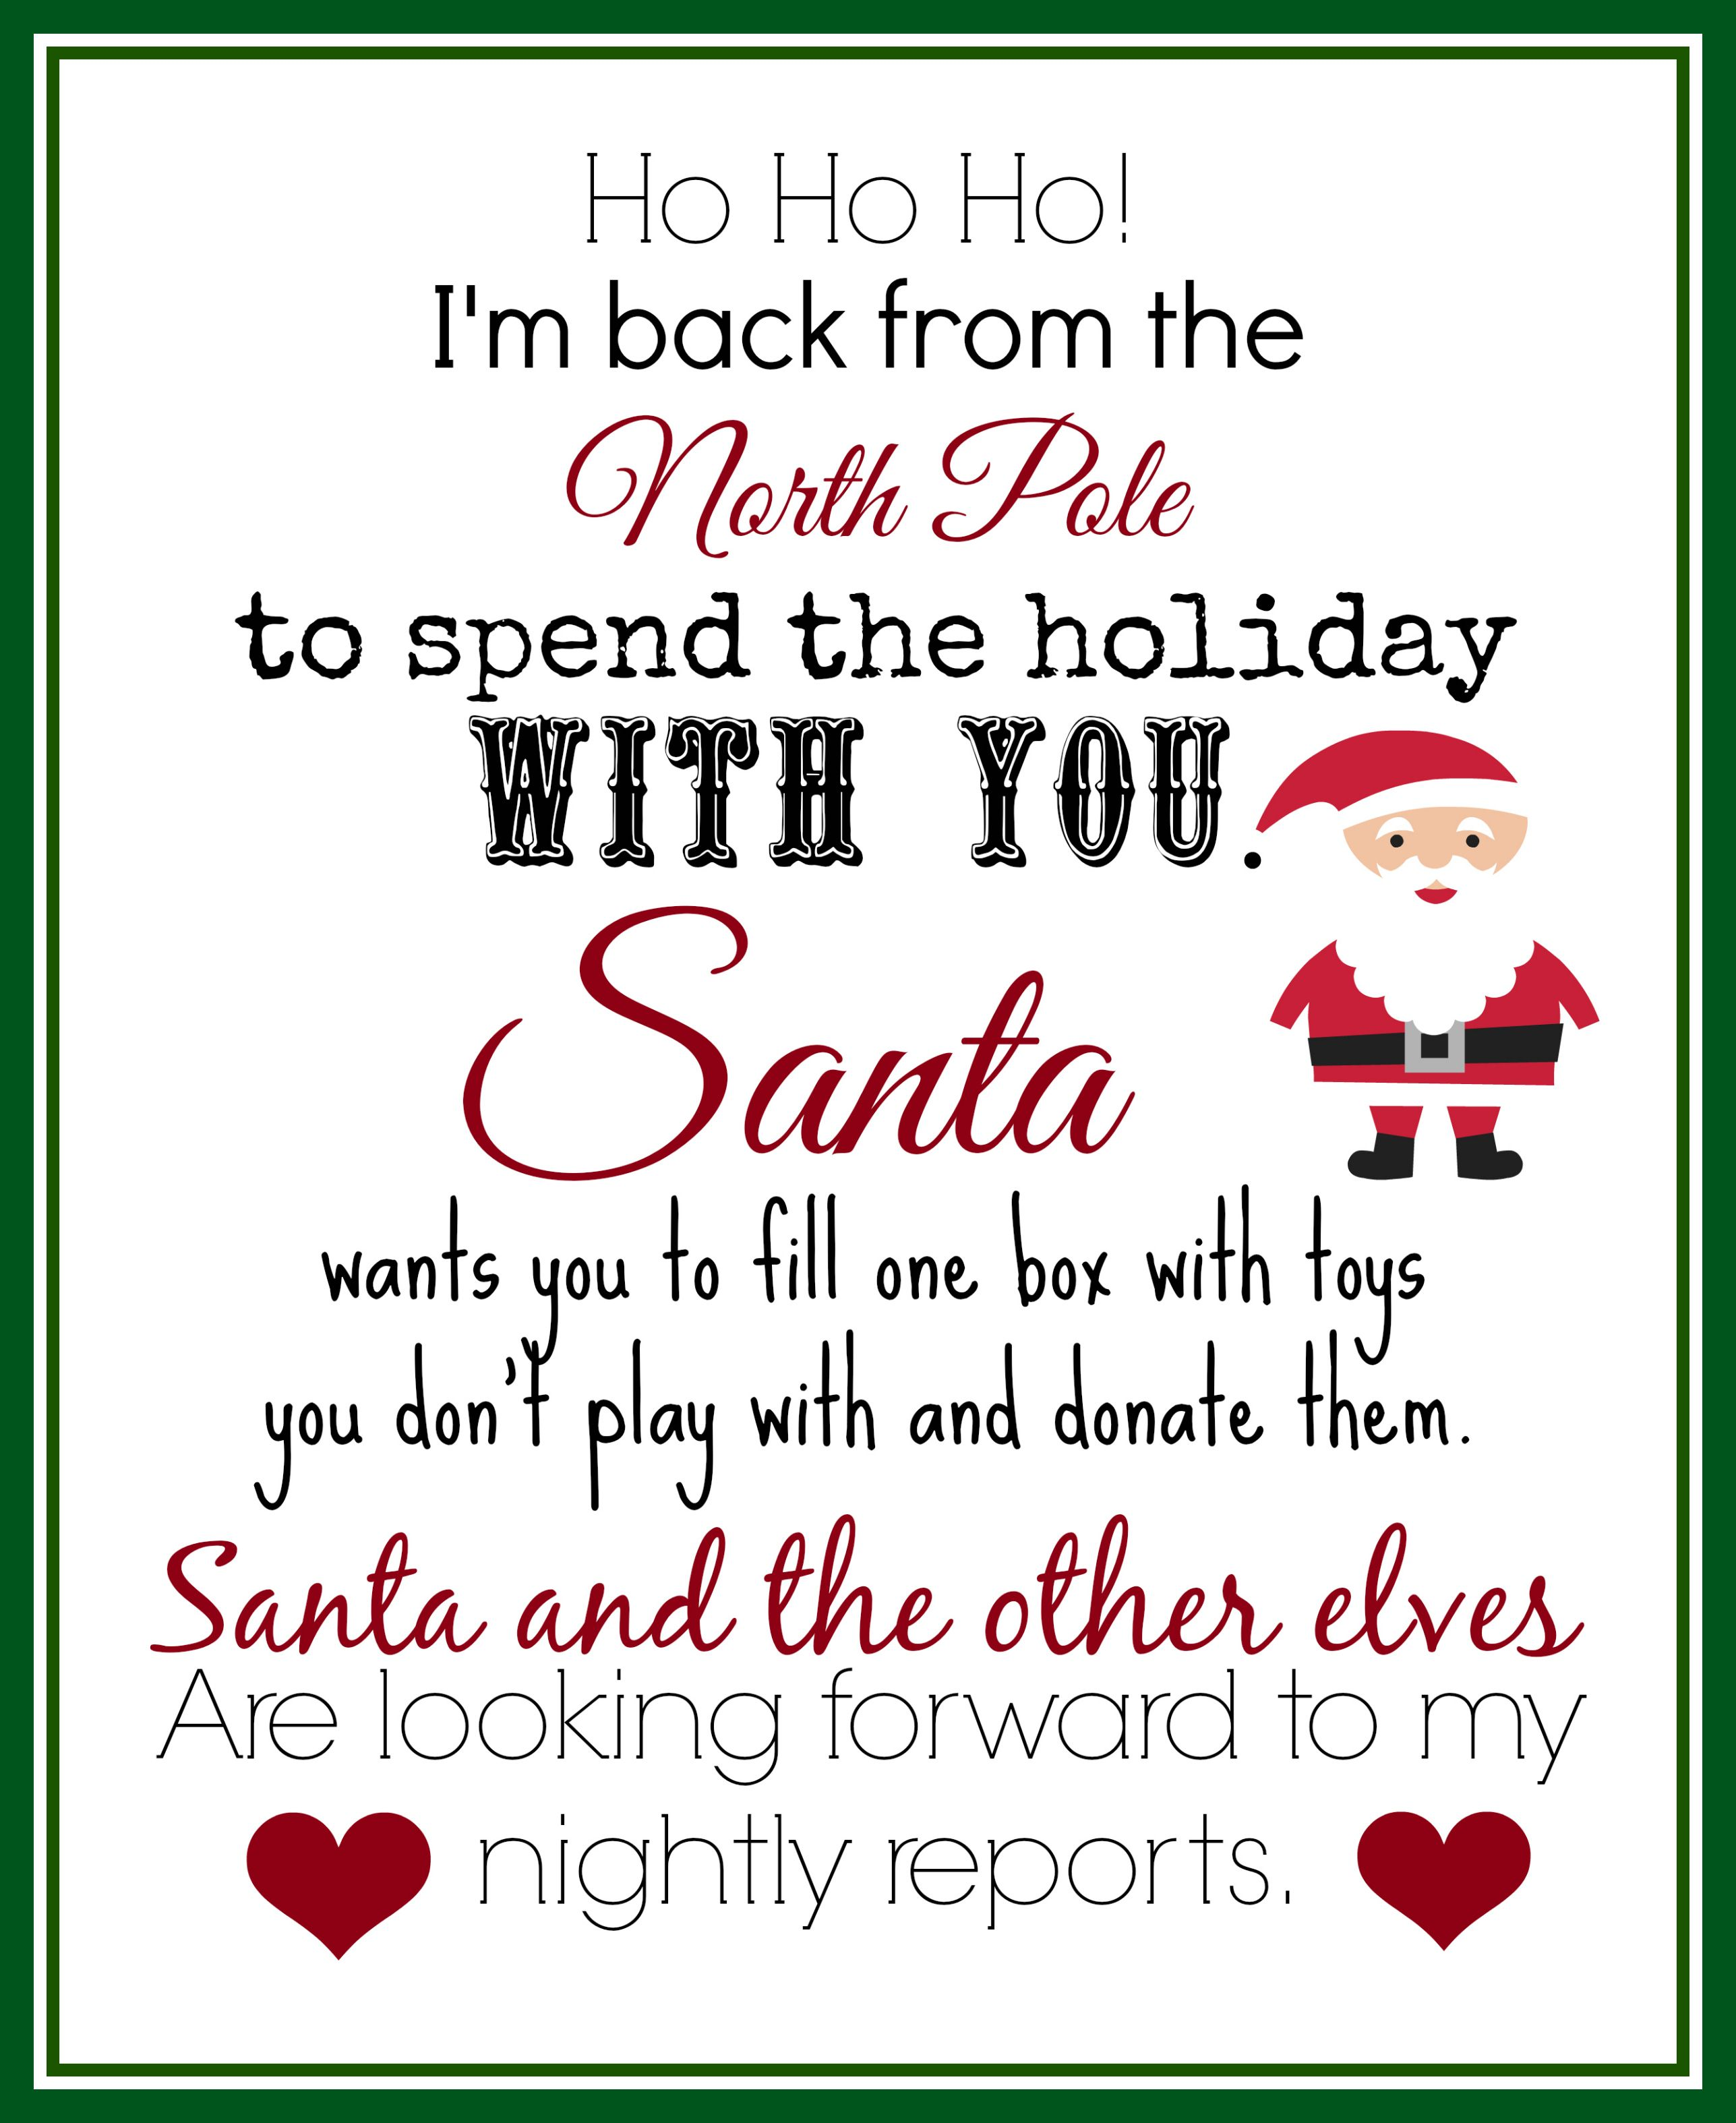 image about Elf on the Shelf Letter Printable referred to as Elf upon the Shelf Strategies for Introduction: 10 Free of charge Printables Elf